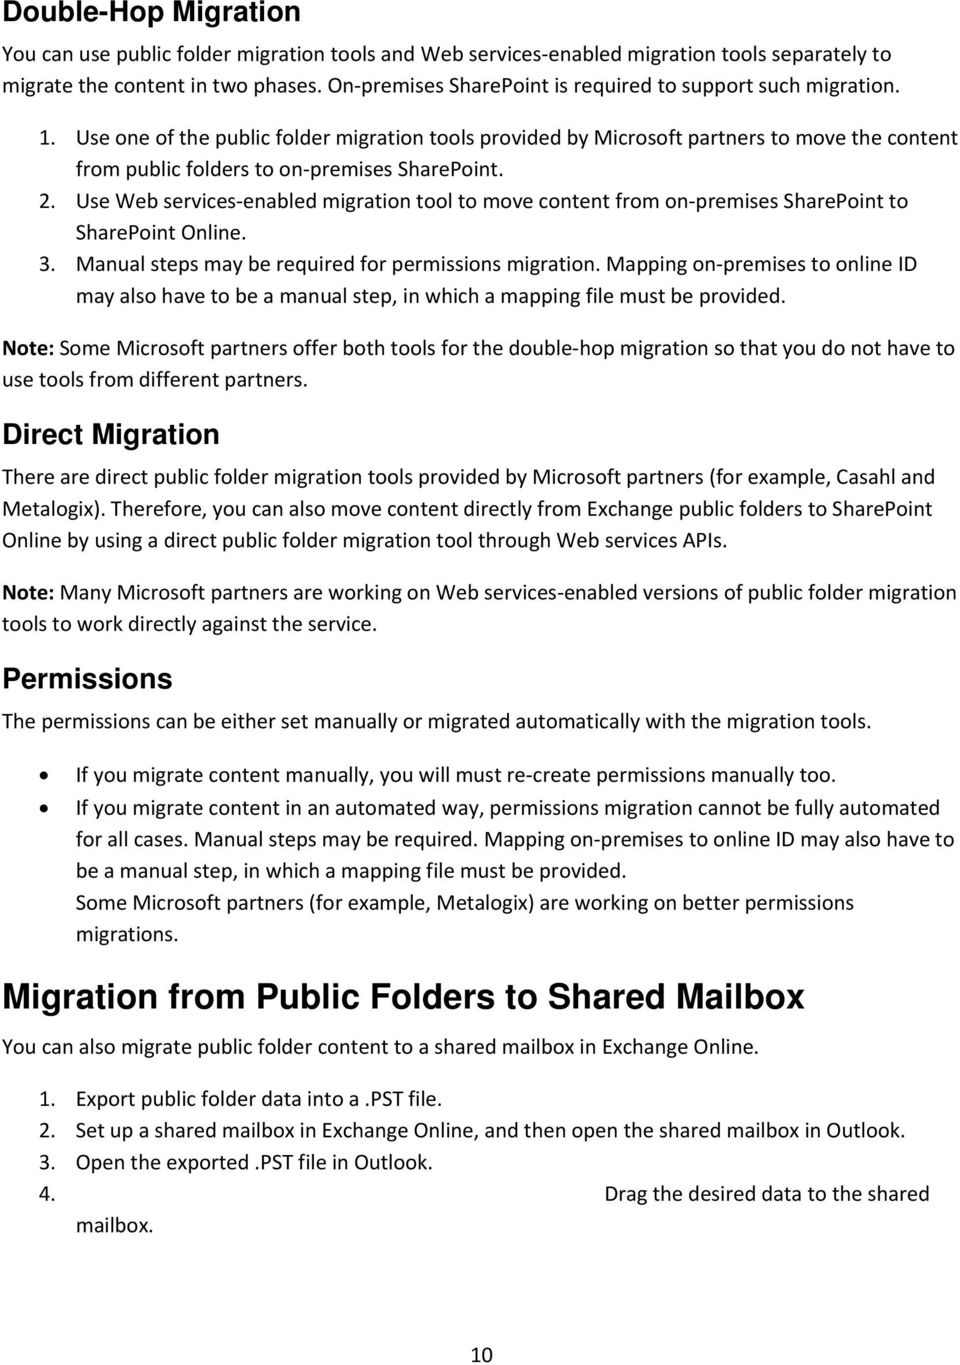 Use one of the public folder migration tools provided by Microsoft partners to move the content from public folders to on premises SharePoint. 2.